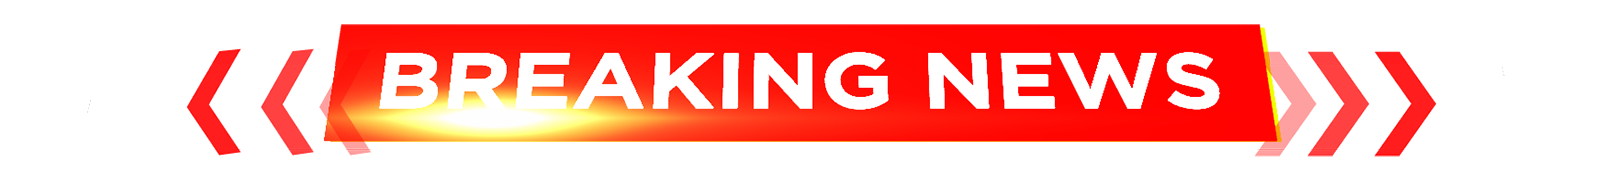 News template png. Breaking images in collection